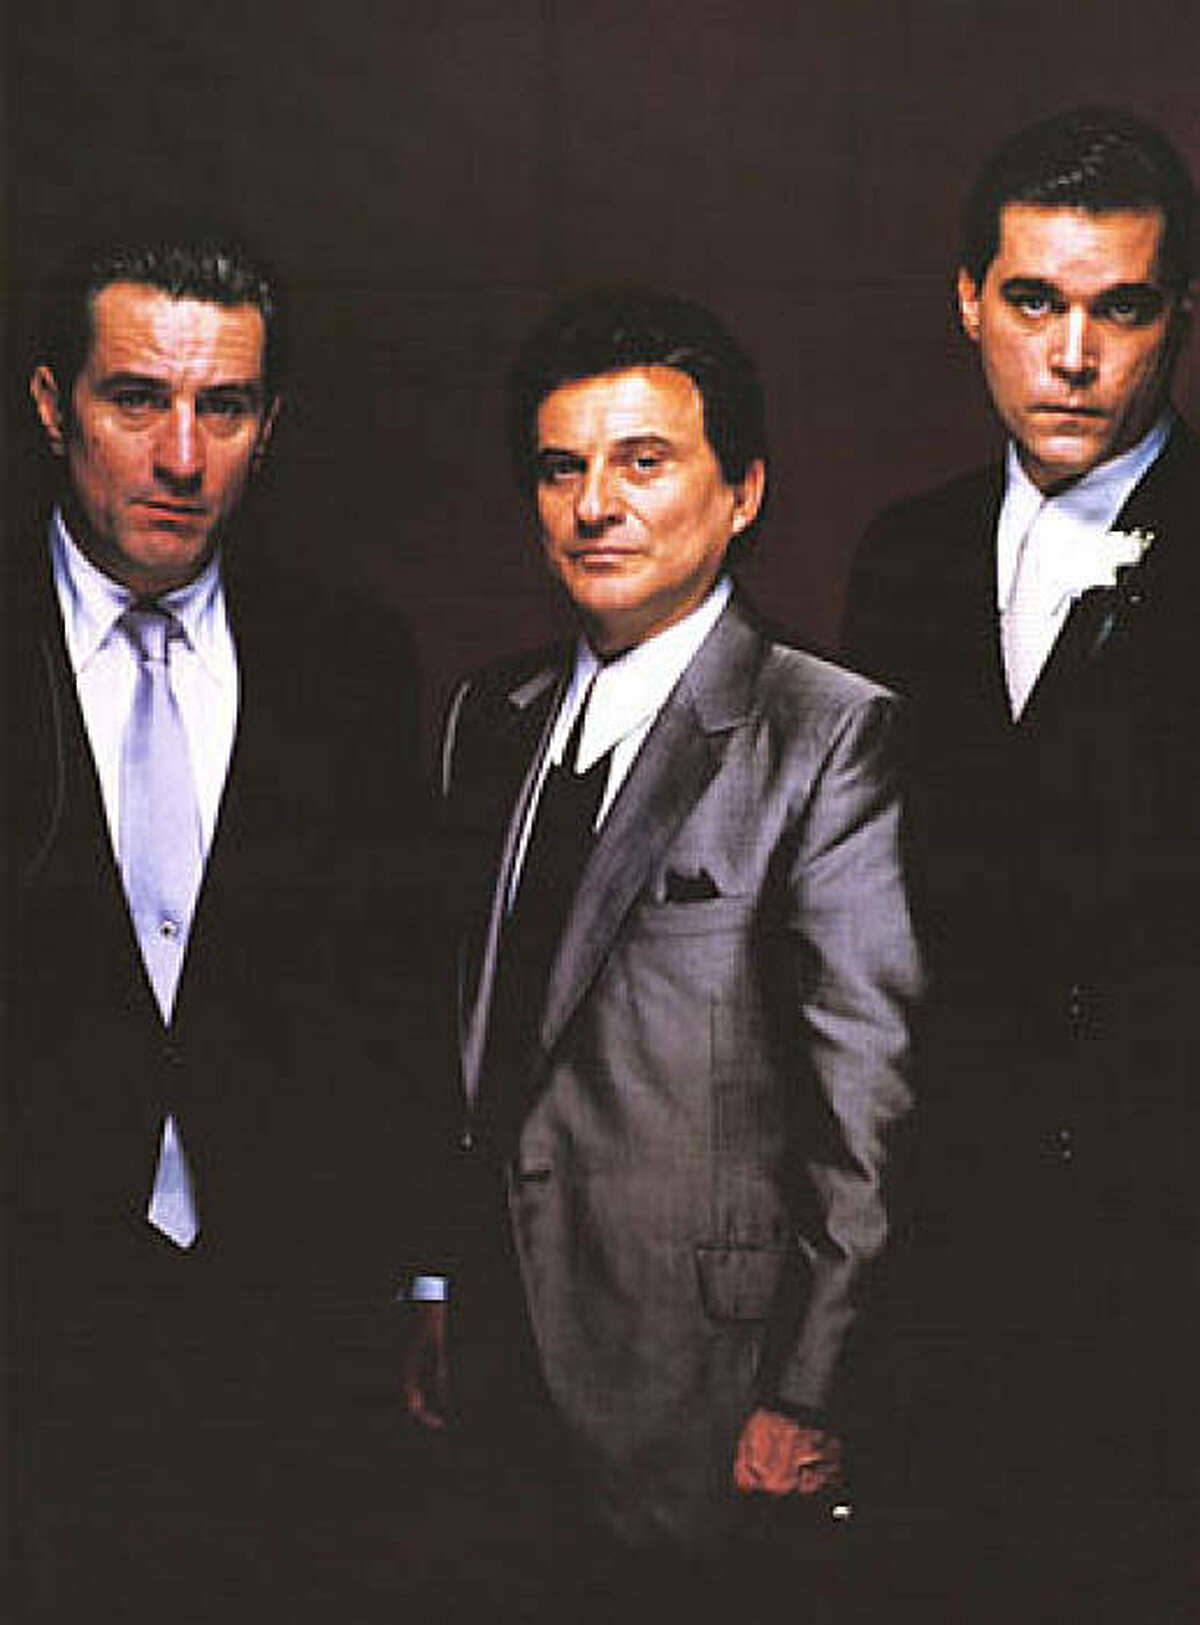 Robert De Niro as Jimmy Conway, Joe Pesci as Tommy DeVito and Ray Liotta as Henry Hill in